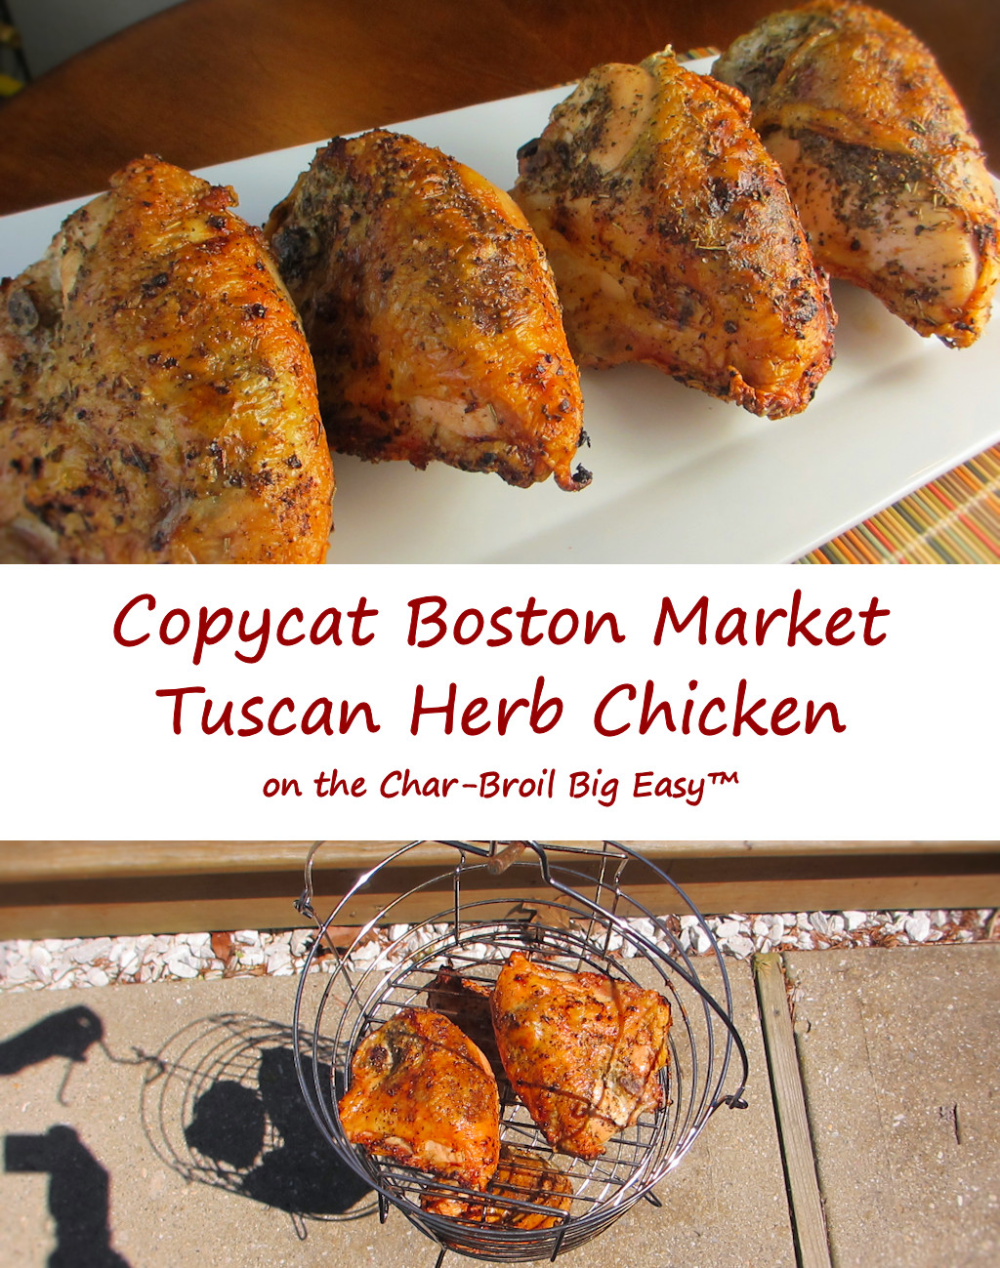 Copycat Boston Market Tuscan Herb Chicken on the Char